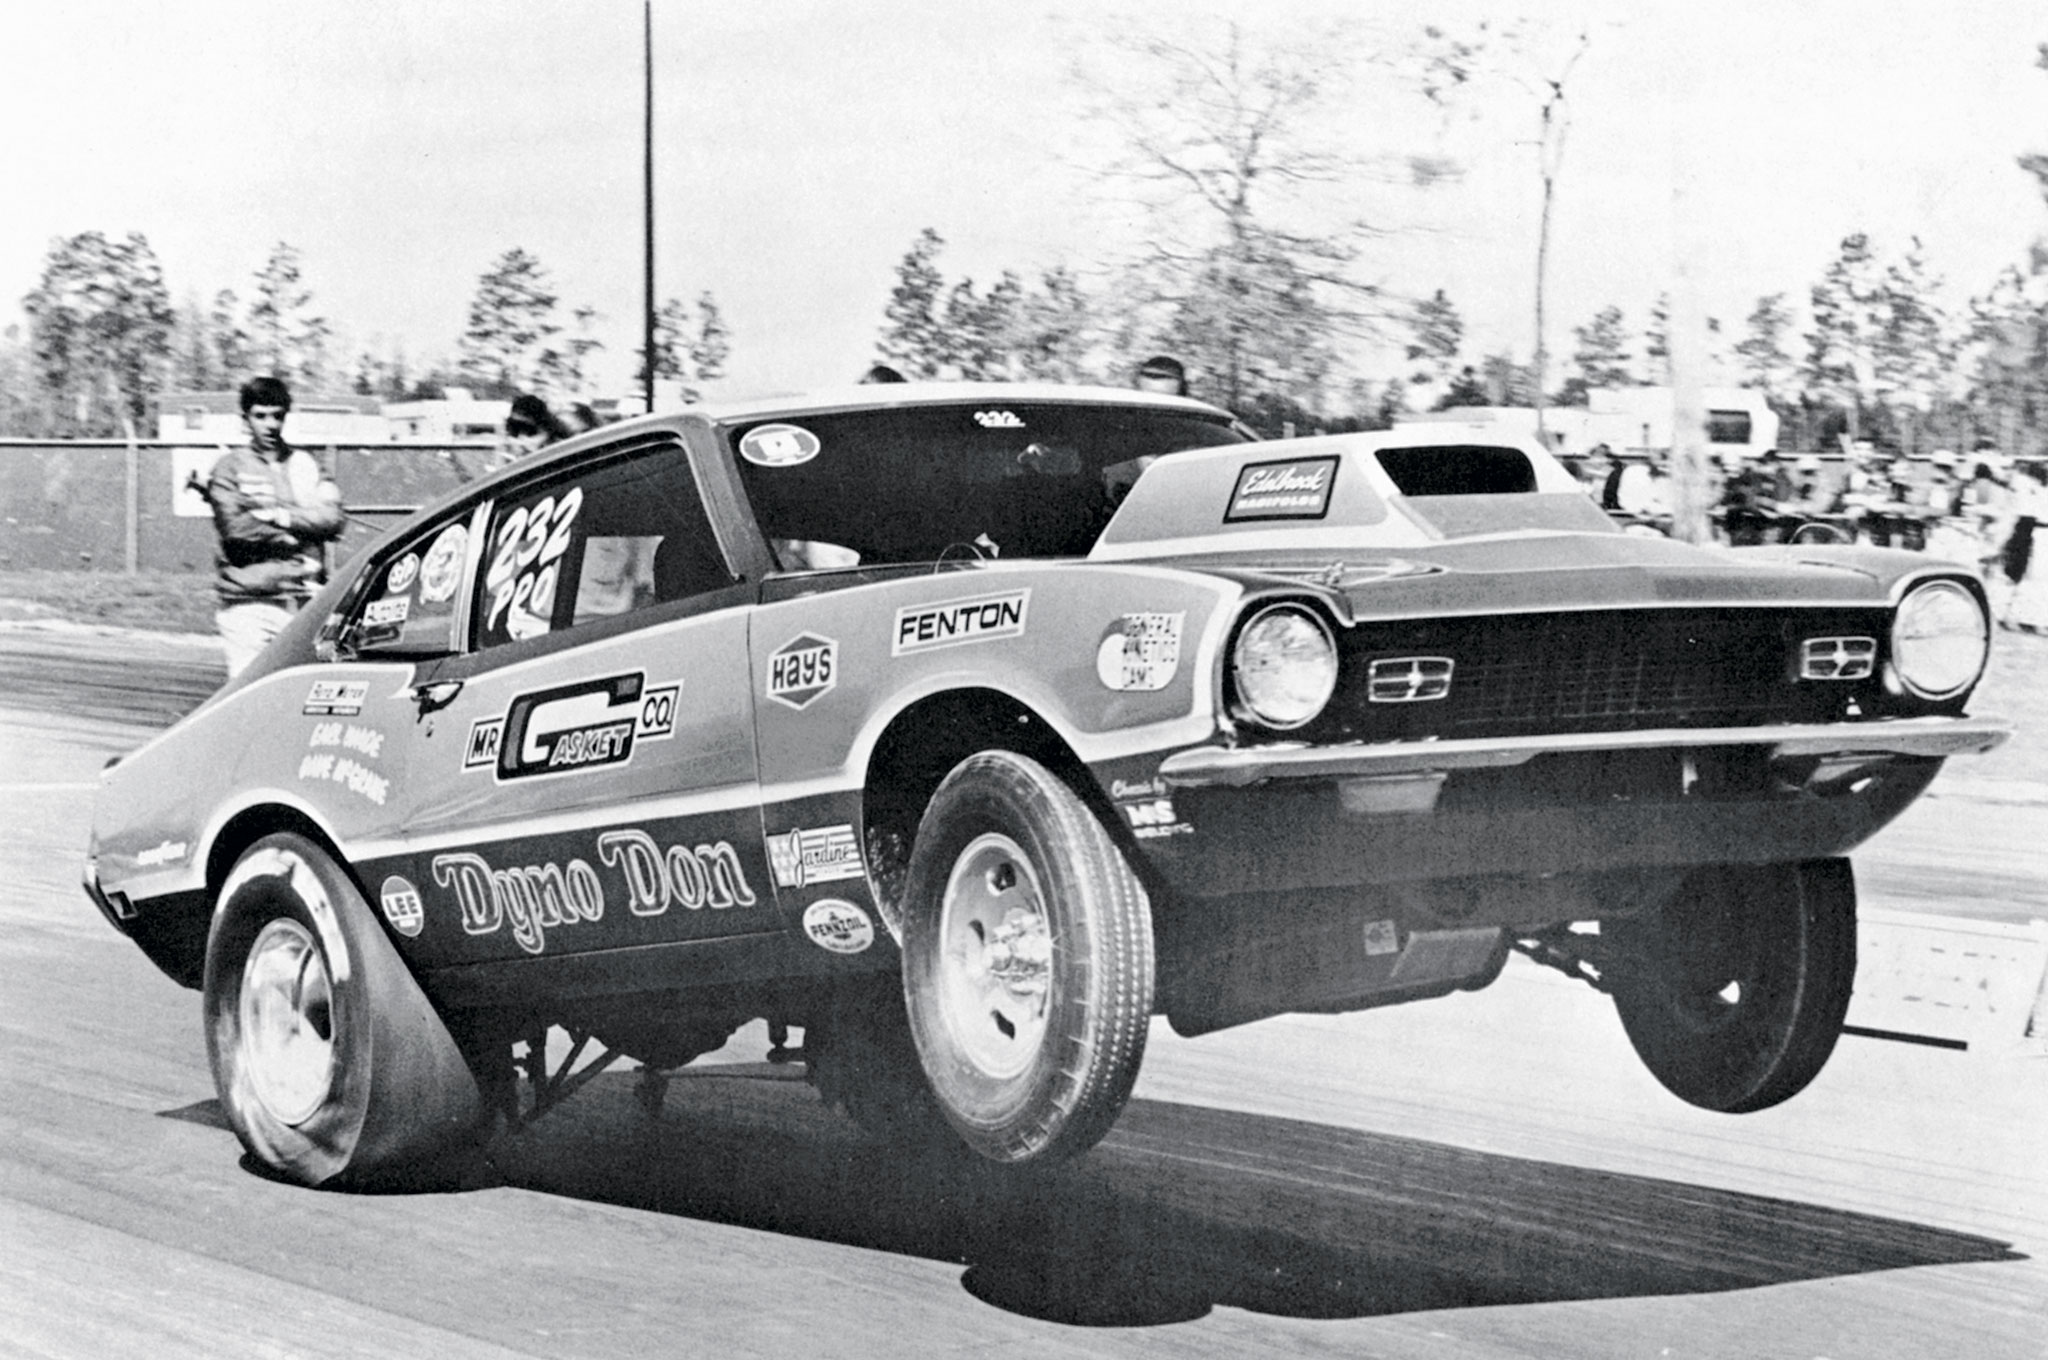 This is one of Kaase's personal photos showing Dyno's Maverick that was Cammer- powered for a time. On the reverse side of the 8x10 photo is a list of Dyno's sponsors with numbers denoting how much each sponsor must have been offering as contingency pay for a particular win. With $100 to $600 each from 14 sponsors, winning meant a lucrative payday—assuming the sponsors came through with the money!